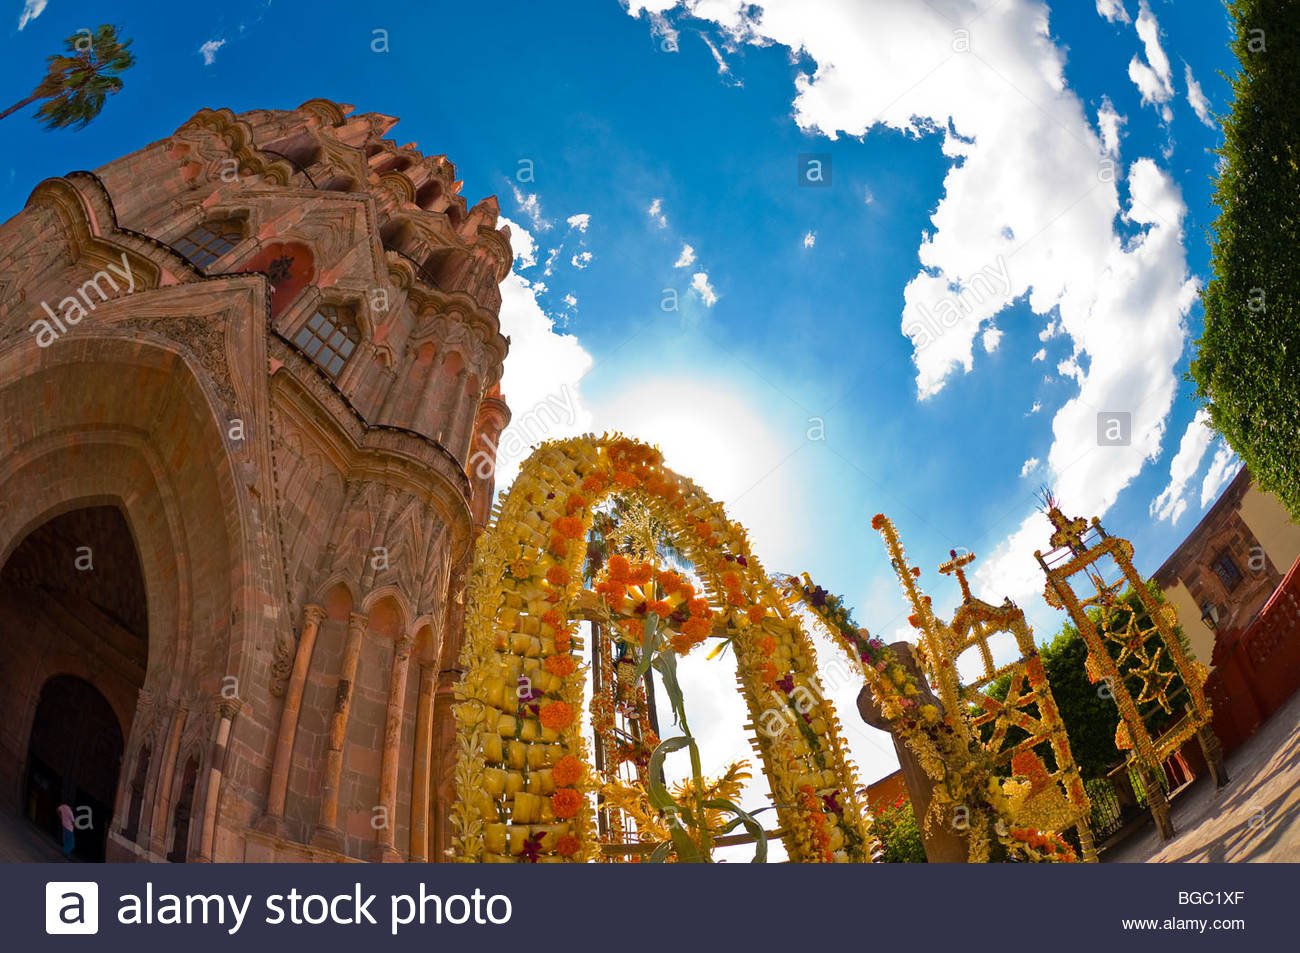 The Church of St. Michael the Archangel, Plaza Principal, San Miguel de Allende, Guanajuato state, Mexico - Stock Image